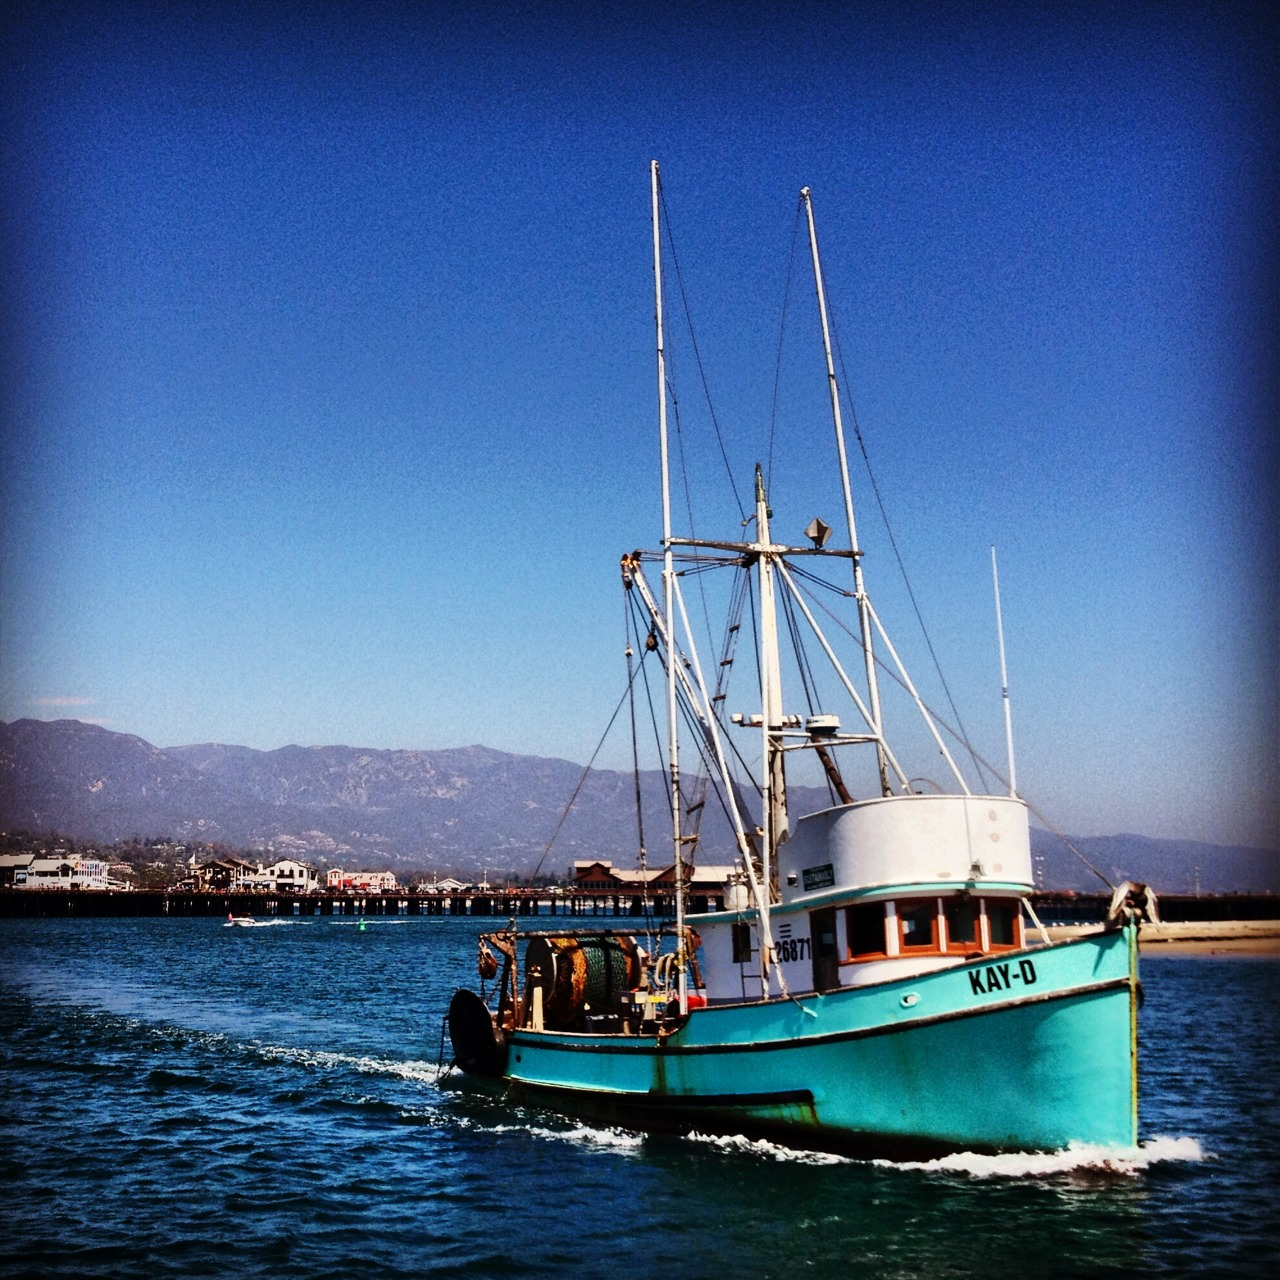 Old fishing boat in the Santa Barbara harbor